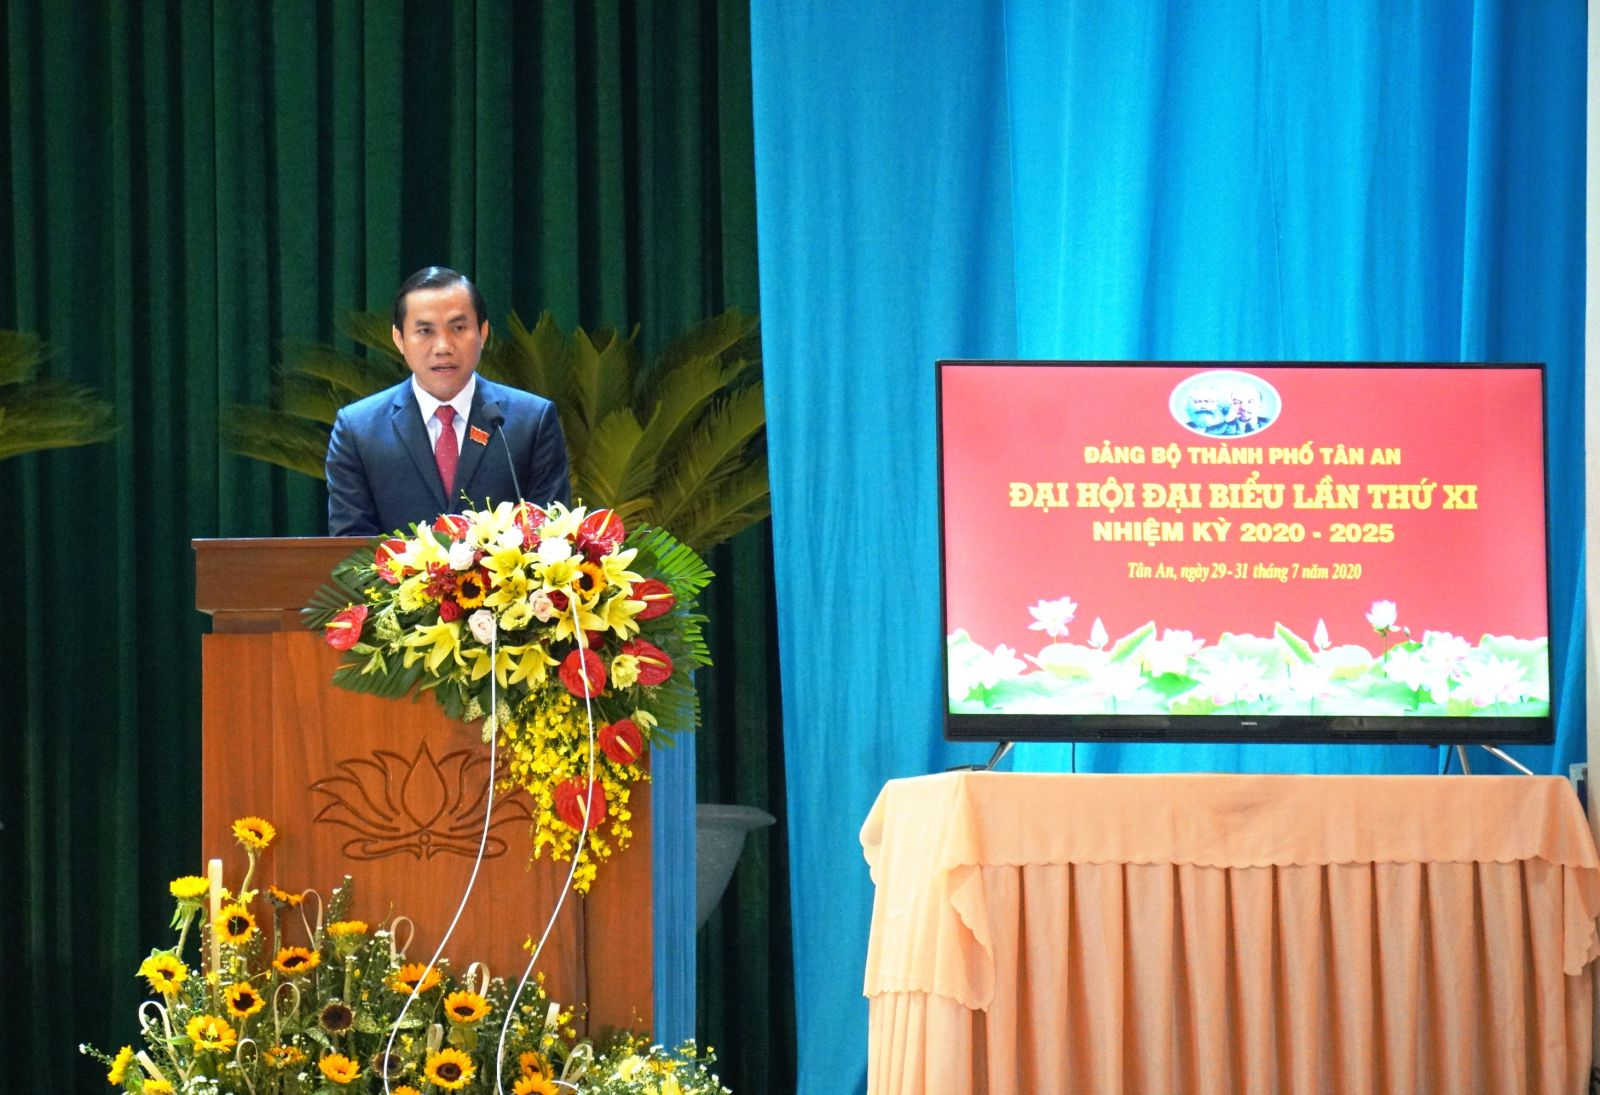 Mr. Le Cong Dinh said that the city identified 2 breakthrough programs and 3 key projects during the new term